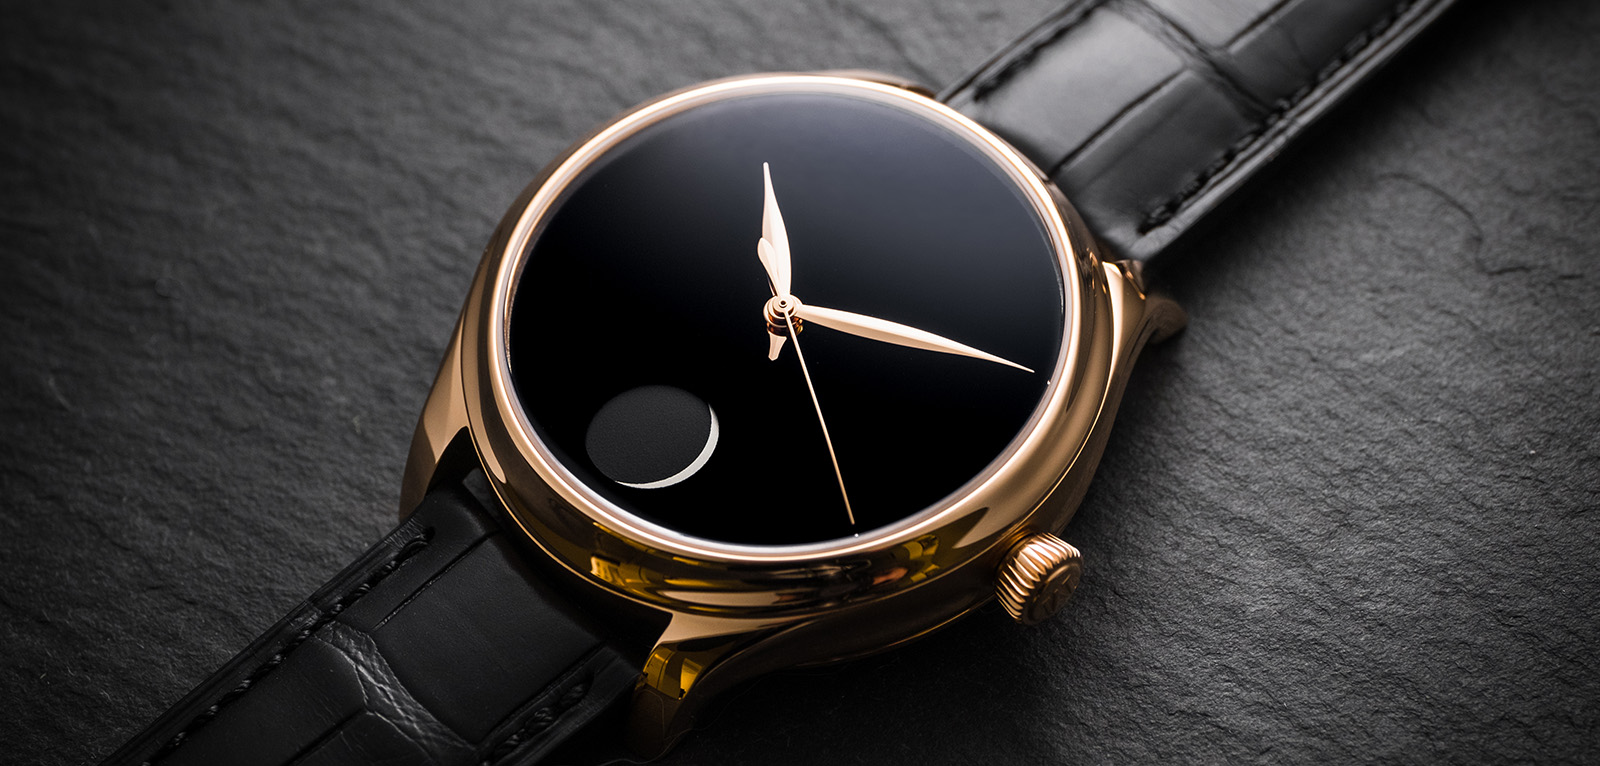 H. Moser & Cie. Endeavour Perpetual Moon Concept Only Watch 2019